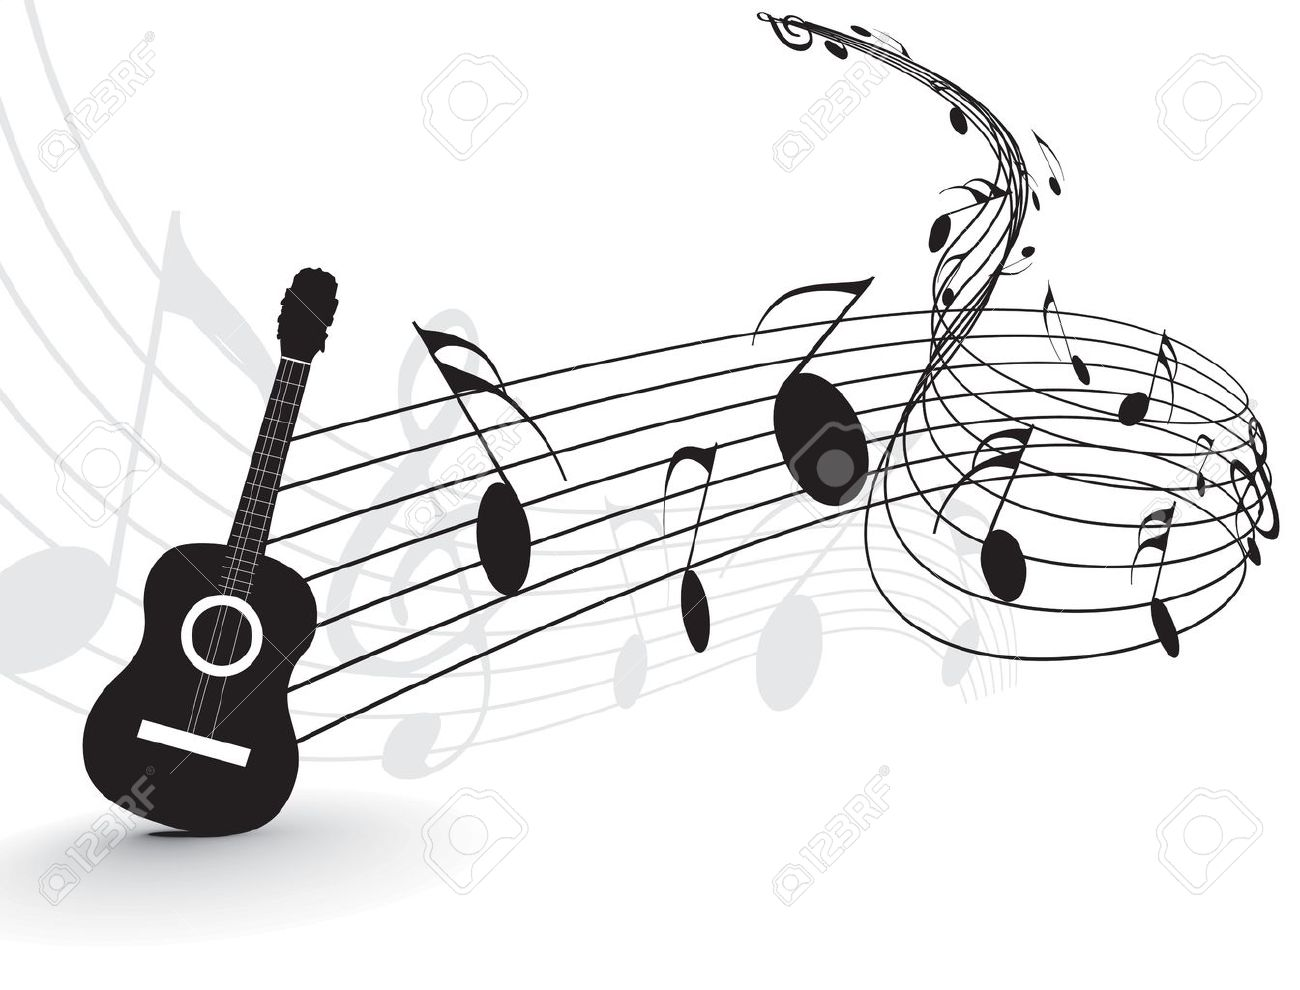 Note Musique Guitare Music Notes With Guitar Player